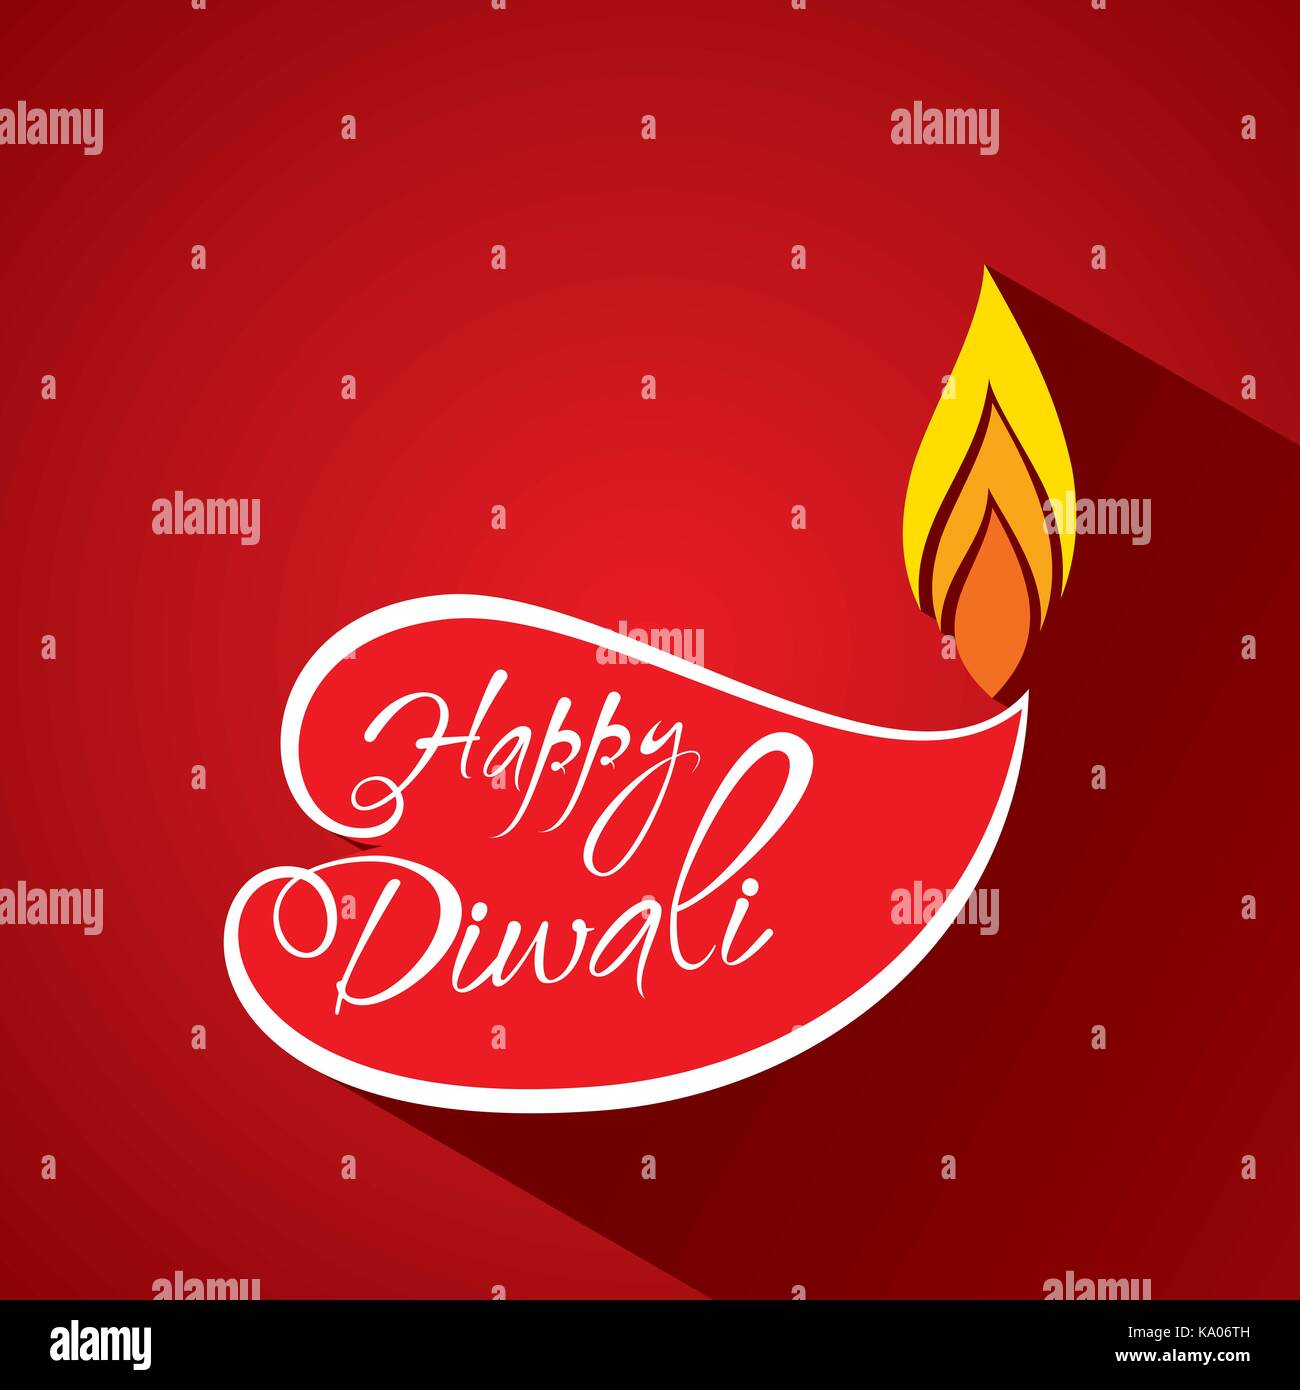 Creative happy diwali festival greeting design with abstract diya creative happy diwali festival greeting design with abstract diya m4hsunfo